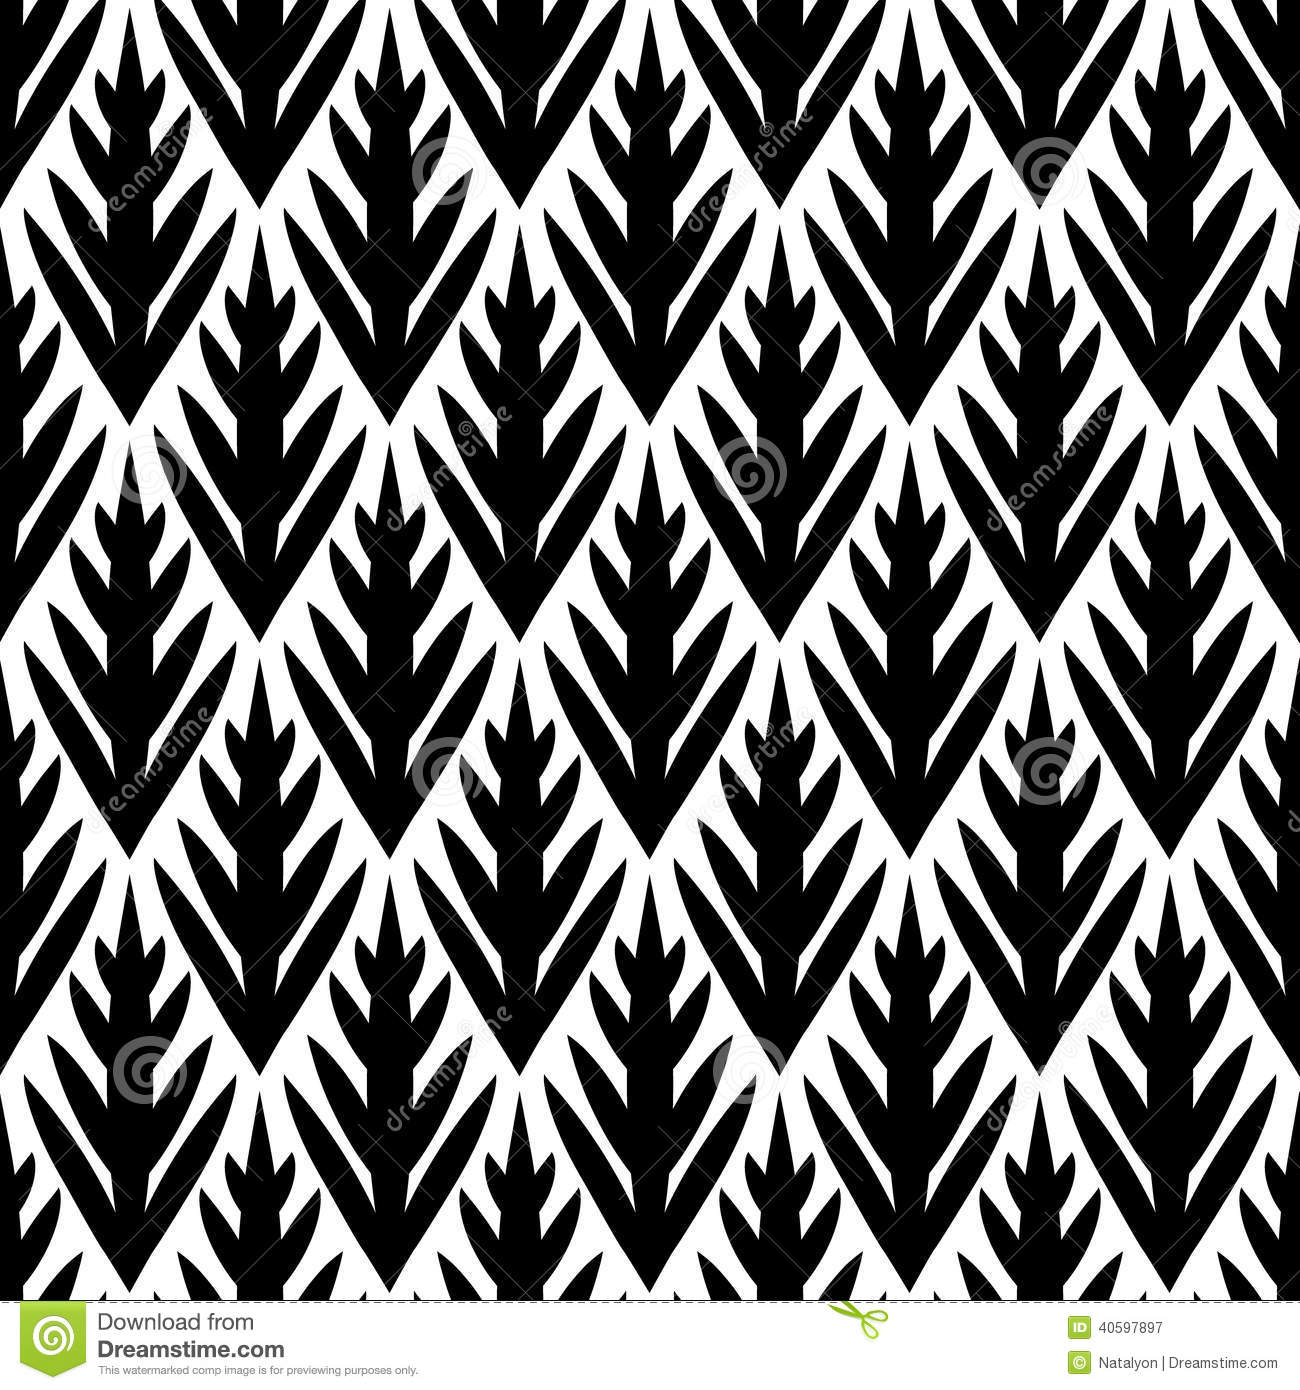 Black And White Simple Trees Geometric Ikat Seamless Pattern.